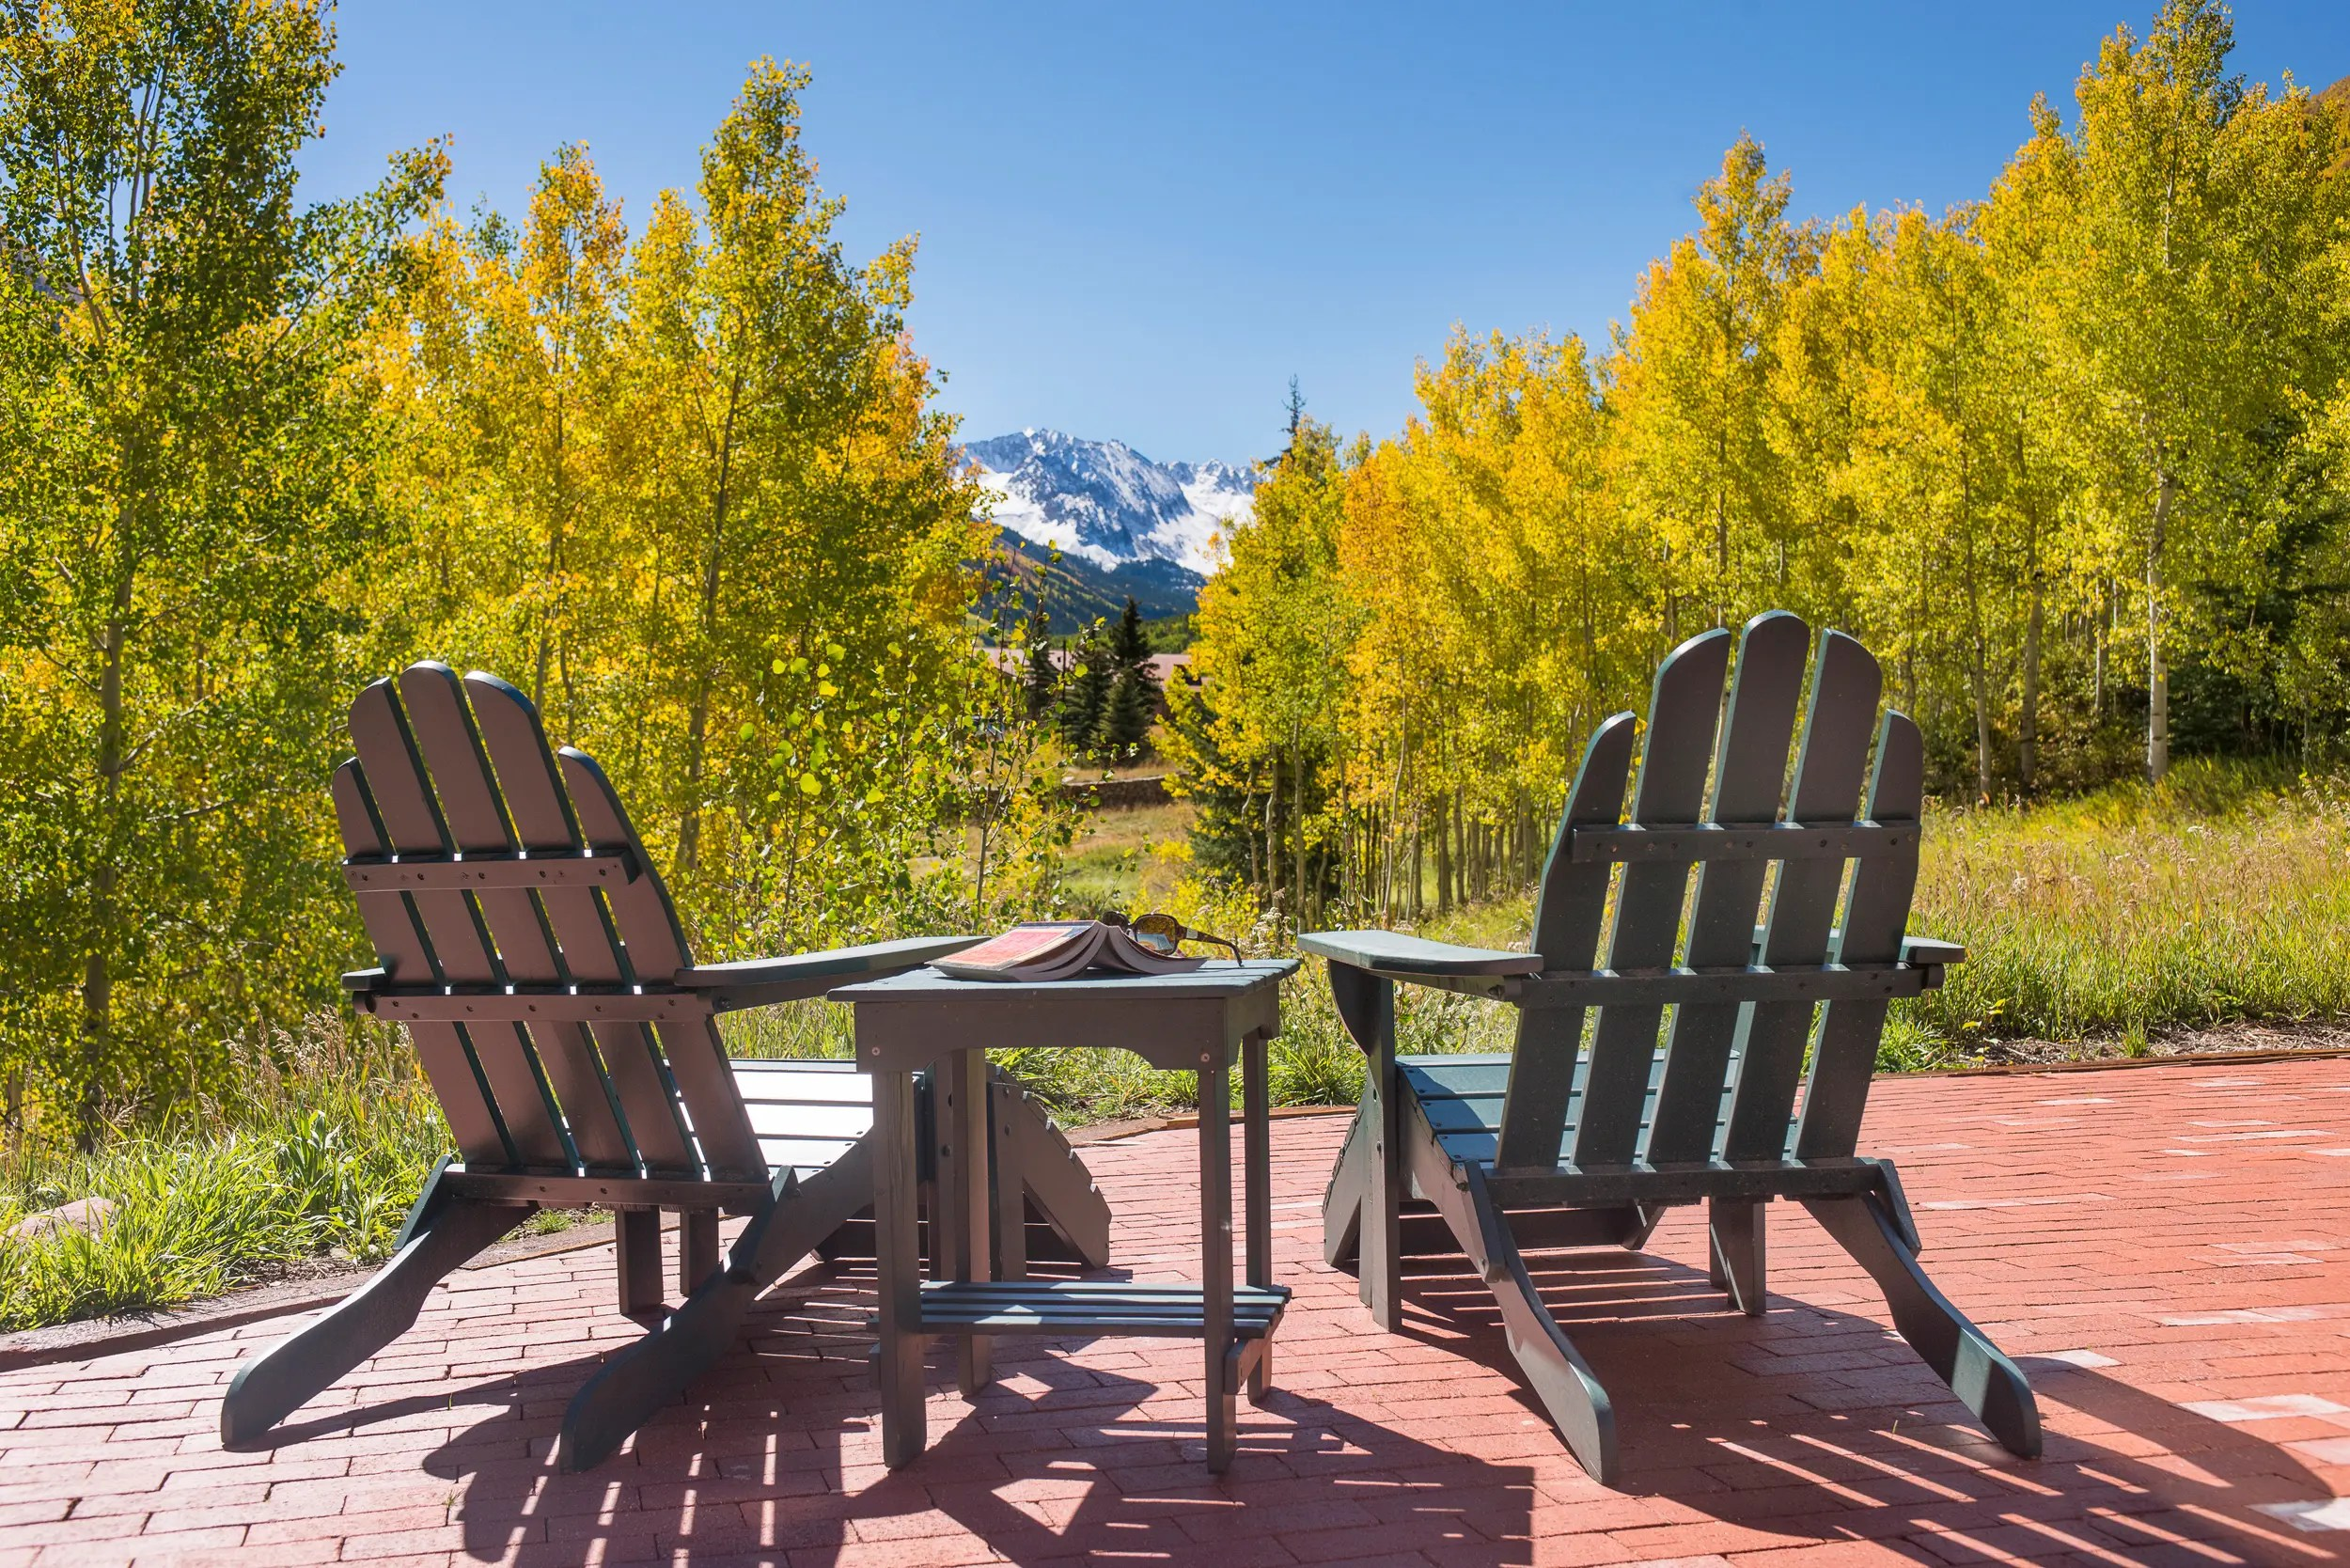 Outdoor living spaces offer stunning mountain views.